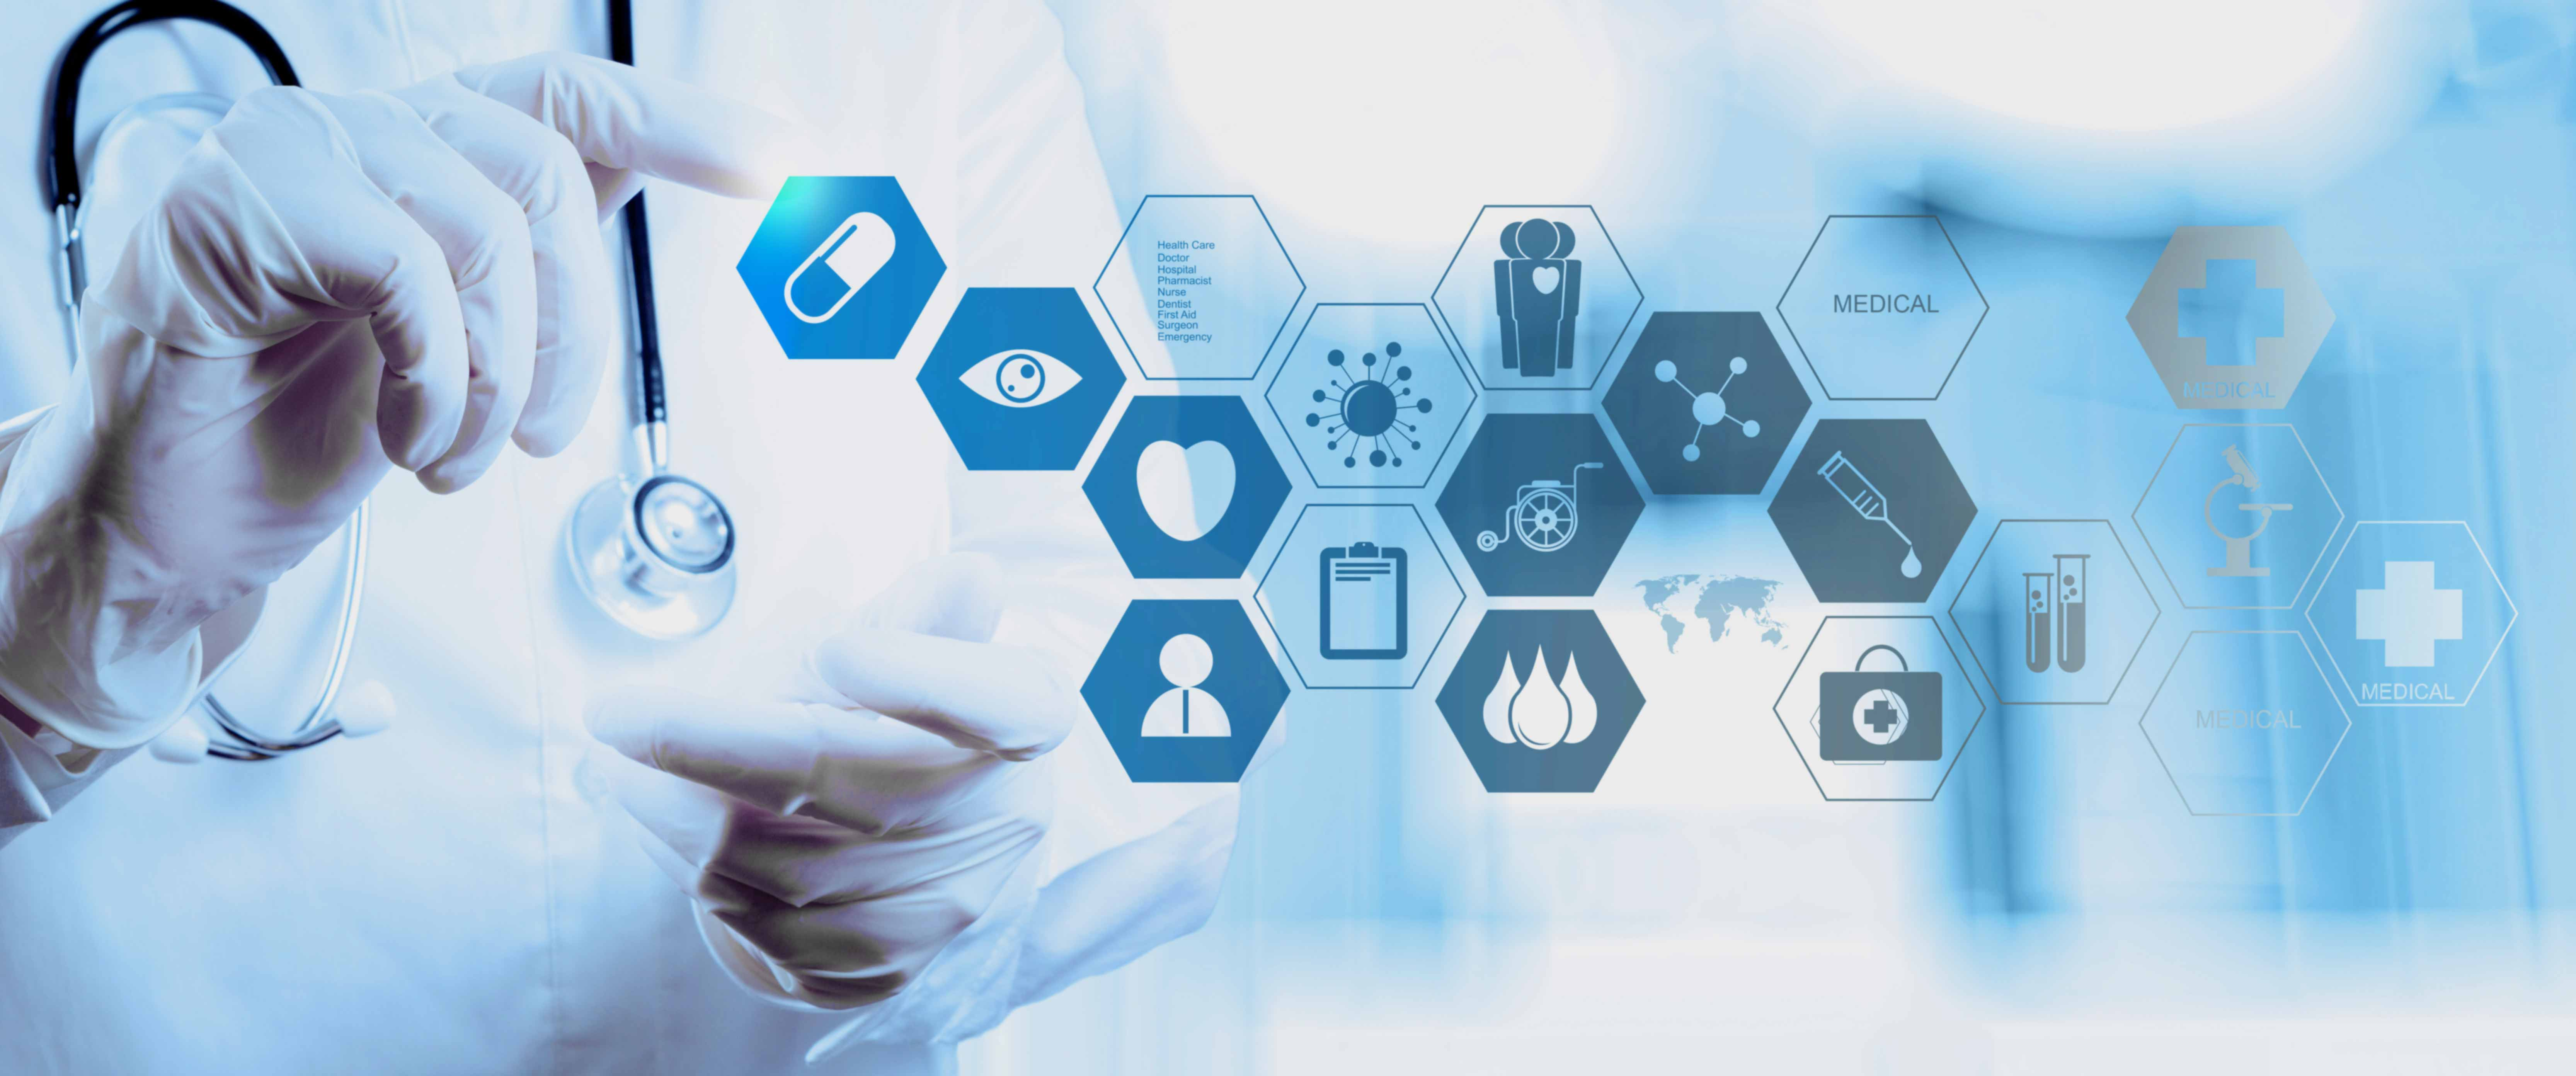 medical and environmental electronic devices corporation essay An environmental control device is a form of electronic assistive technology which enables people with environmental control devices may be assessed for and.